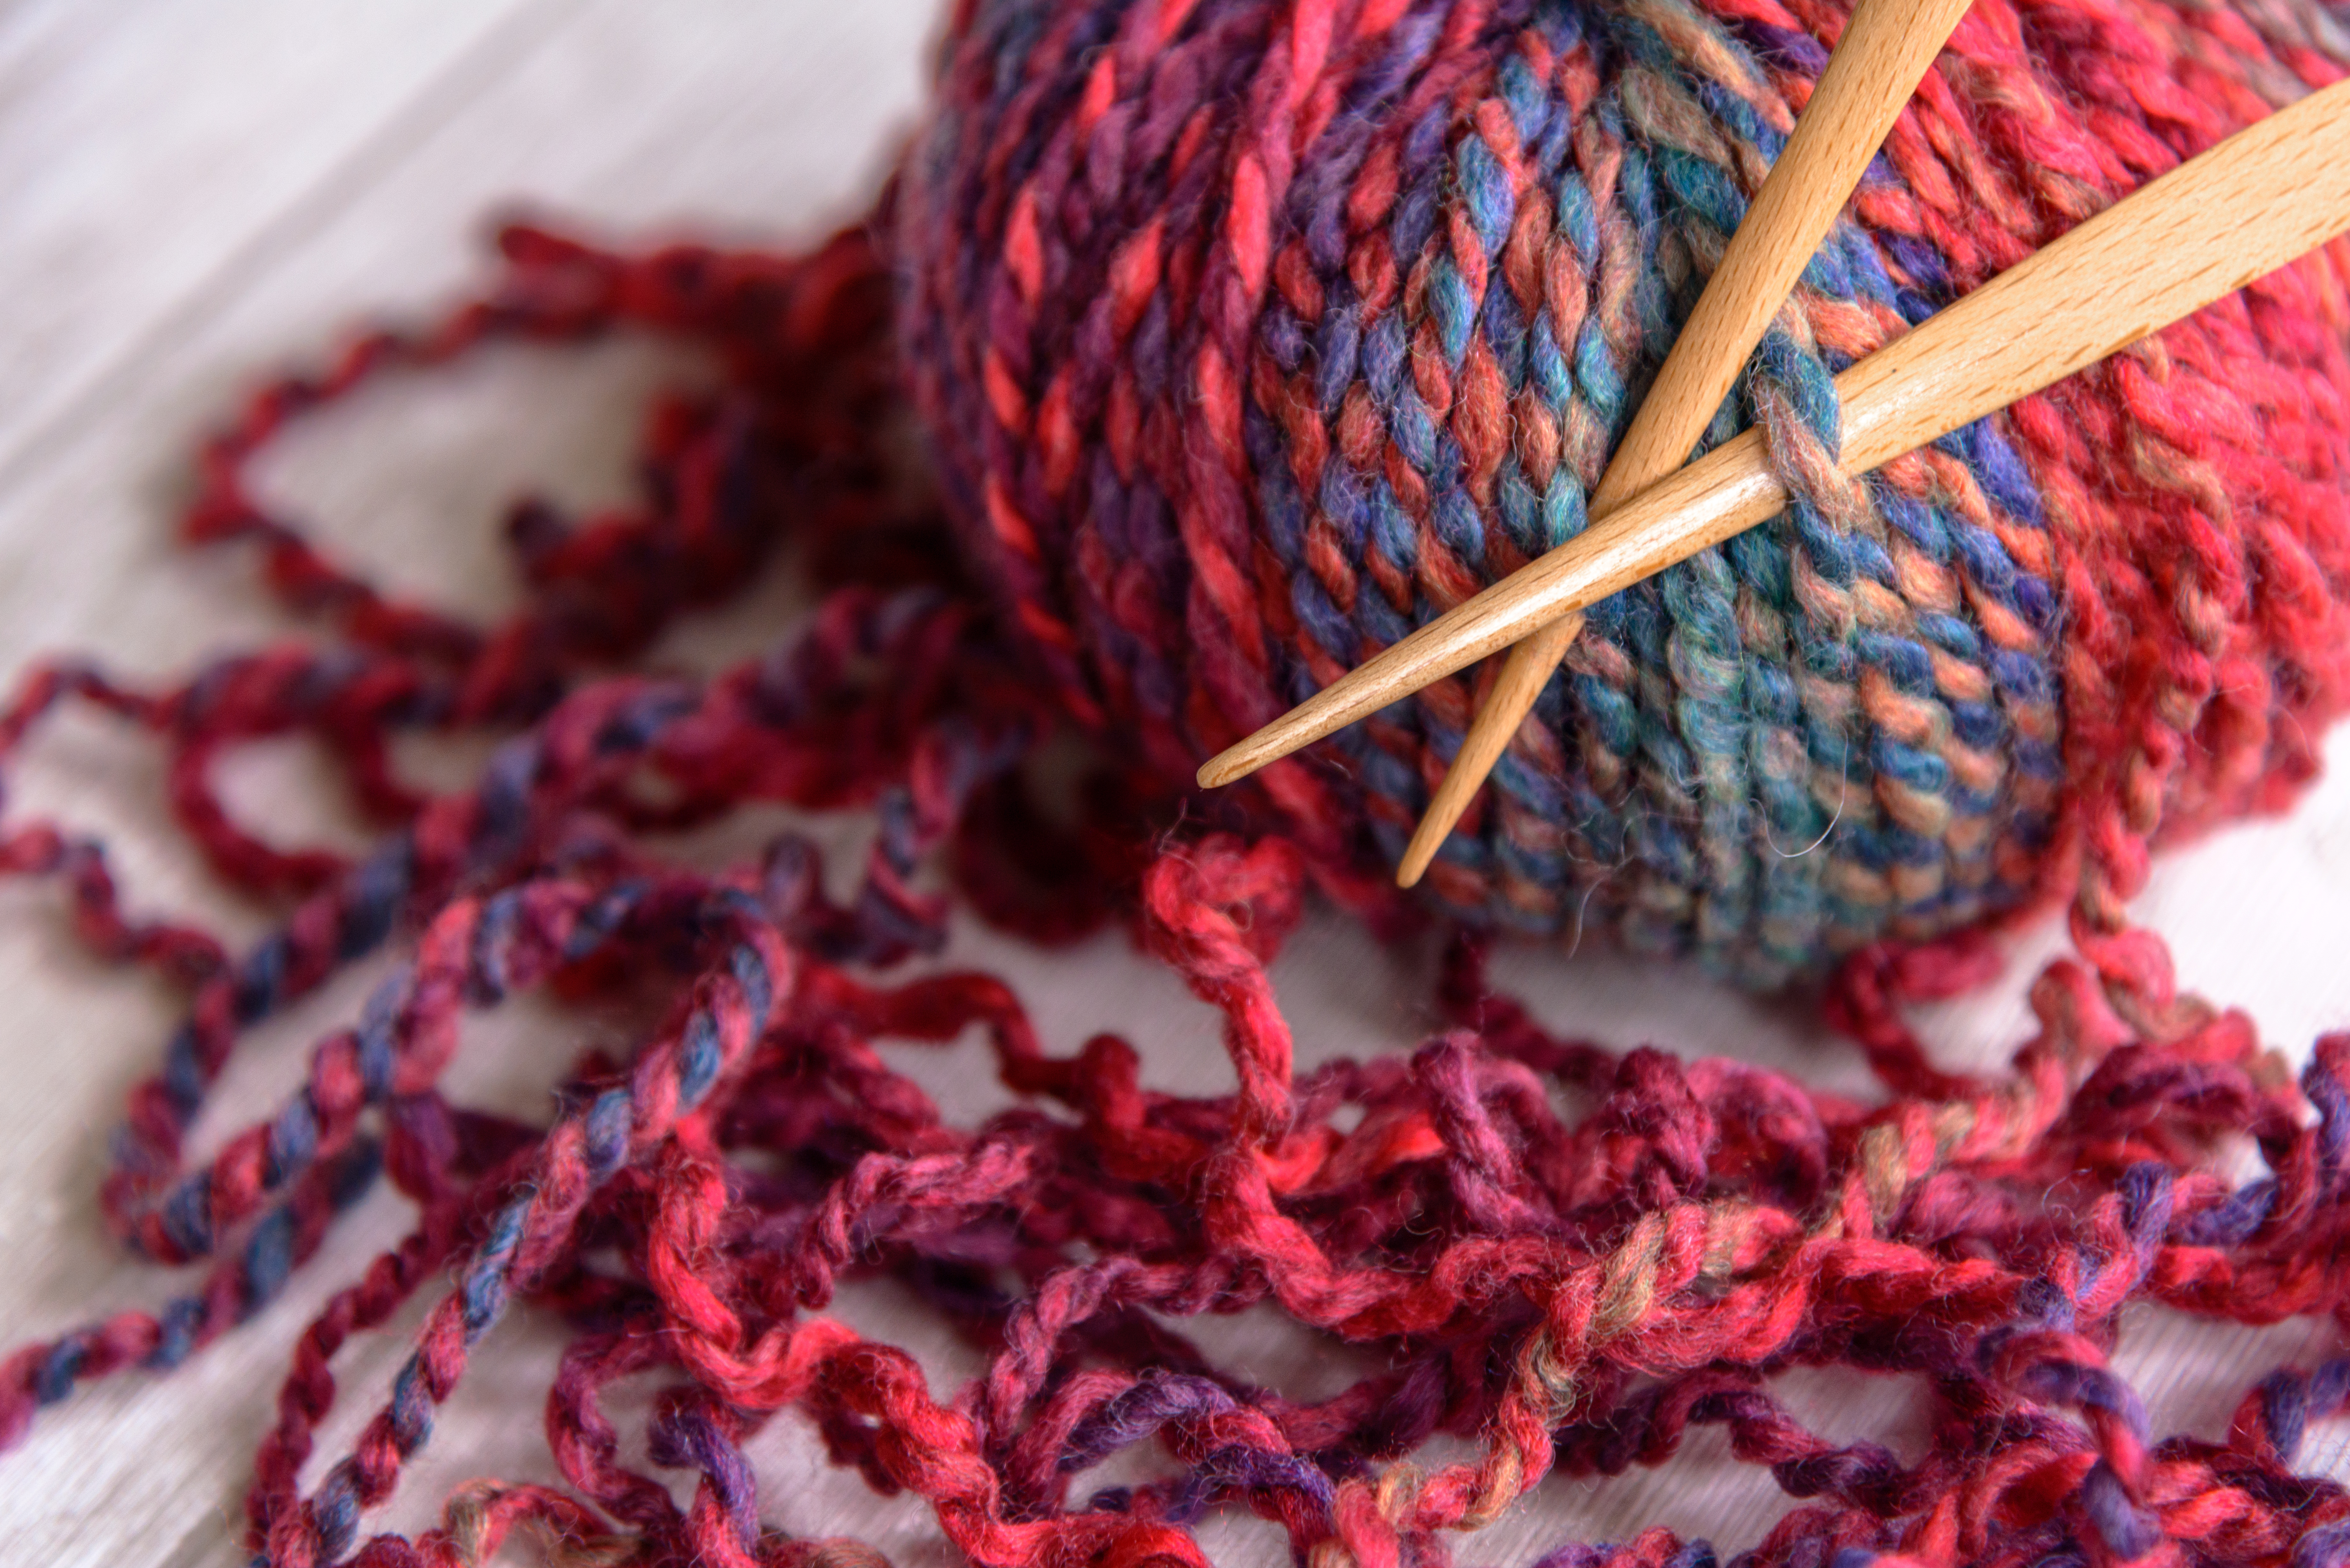 Ravelry Patterns Knitting This Knitting Group Just Banned Posts Supporting Trump Time